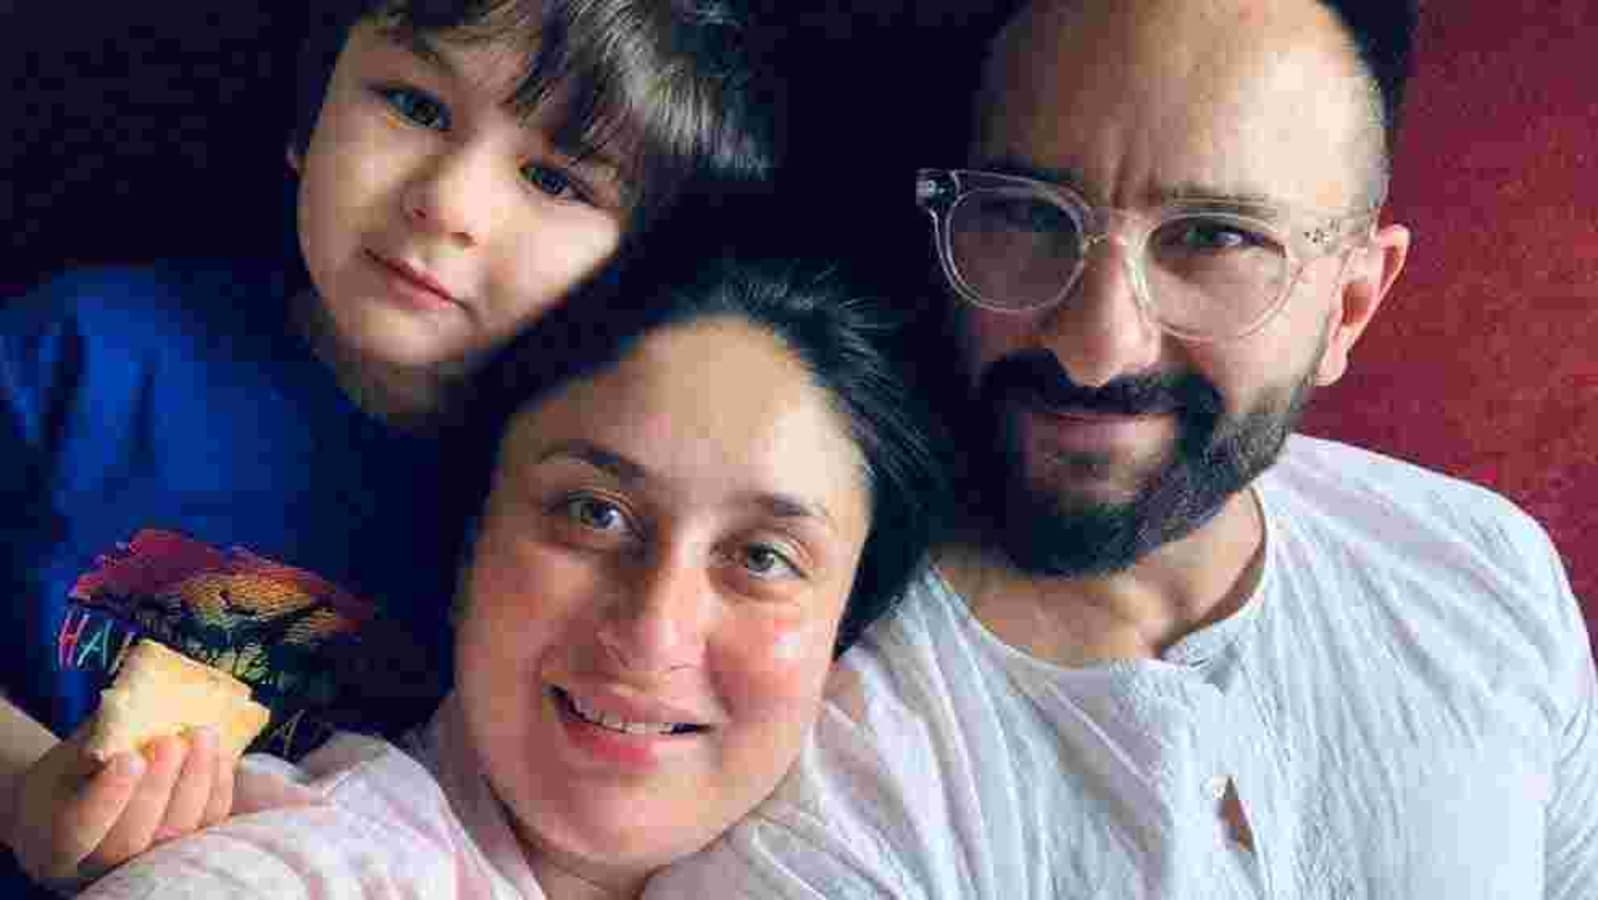 When Saif Ali Khan said he 'should've added a disclaimer' to son Taimur's name: 'Any resemblance is purely coincidental' - Hindustan Times